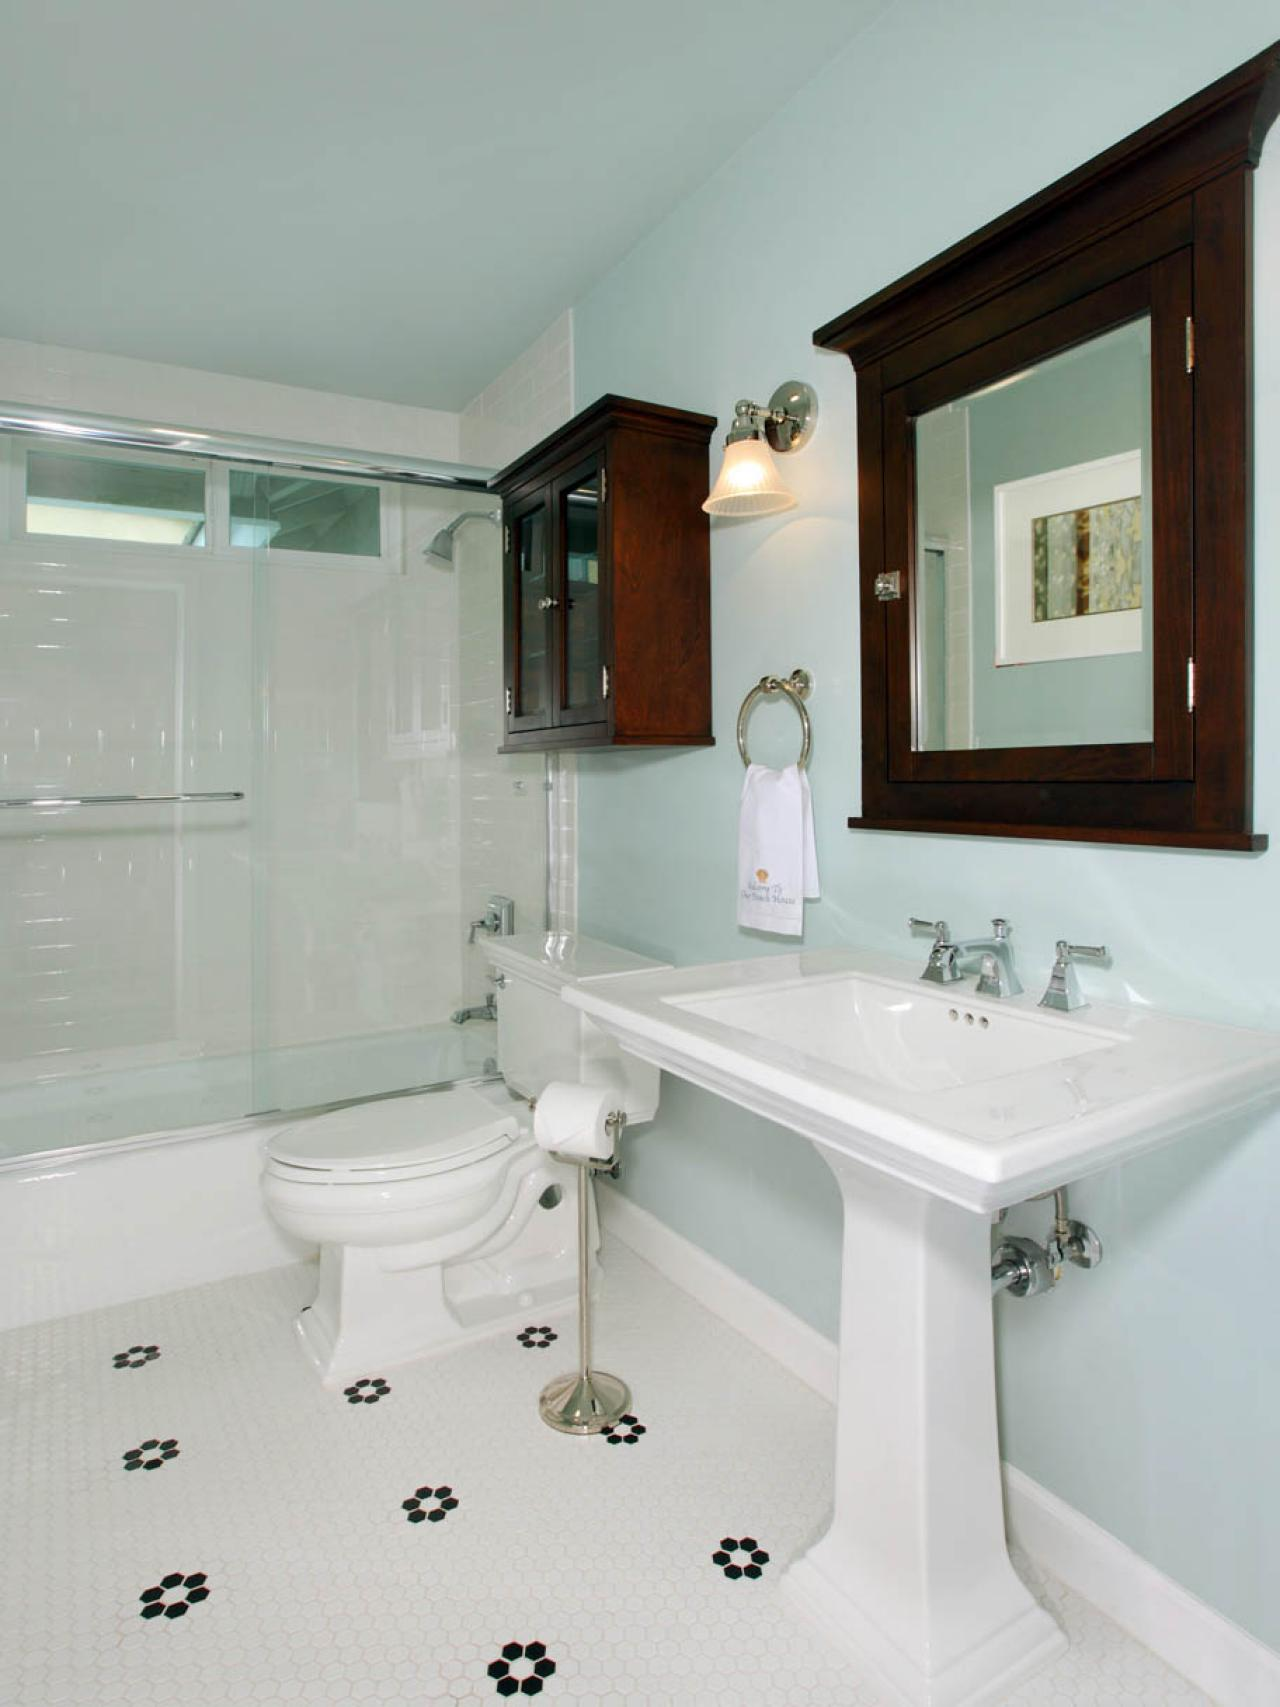 DP_Rebecca-Johnston-white-teal-traditional-bathroom-sink_v.jpg.rend.hgtvcom.1280.1707